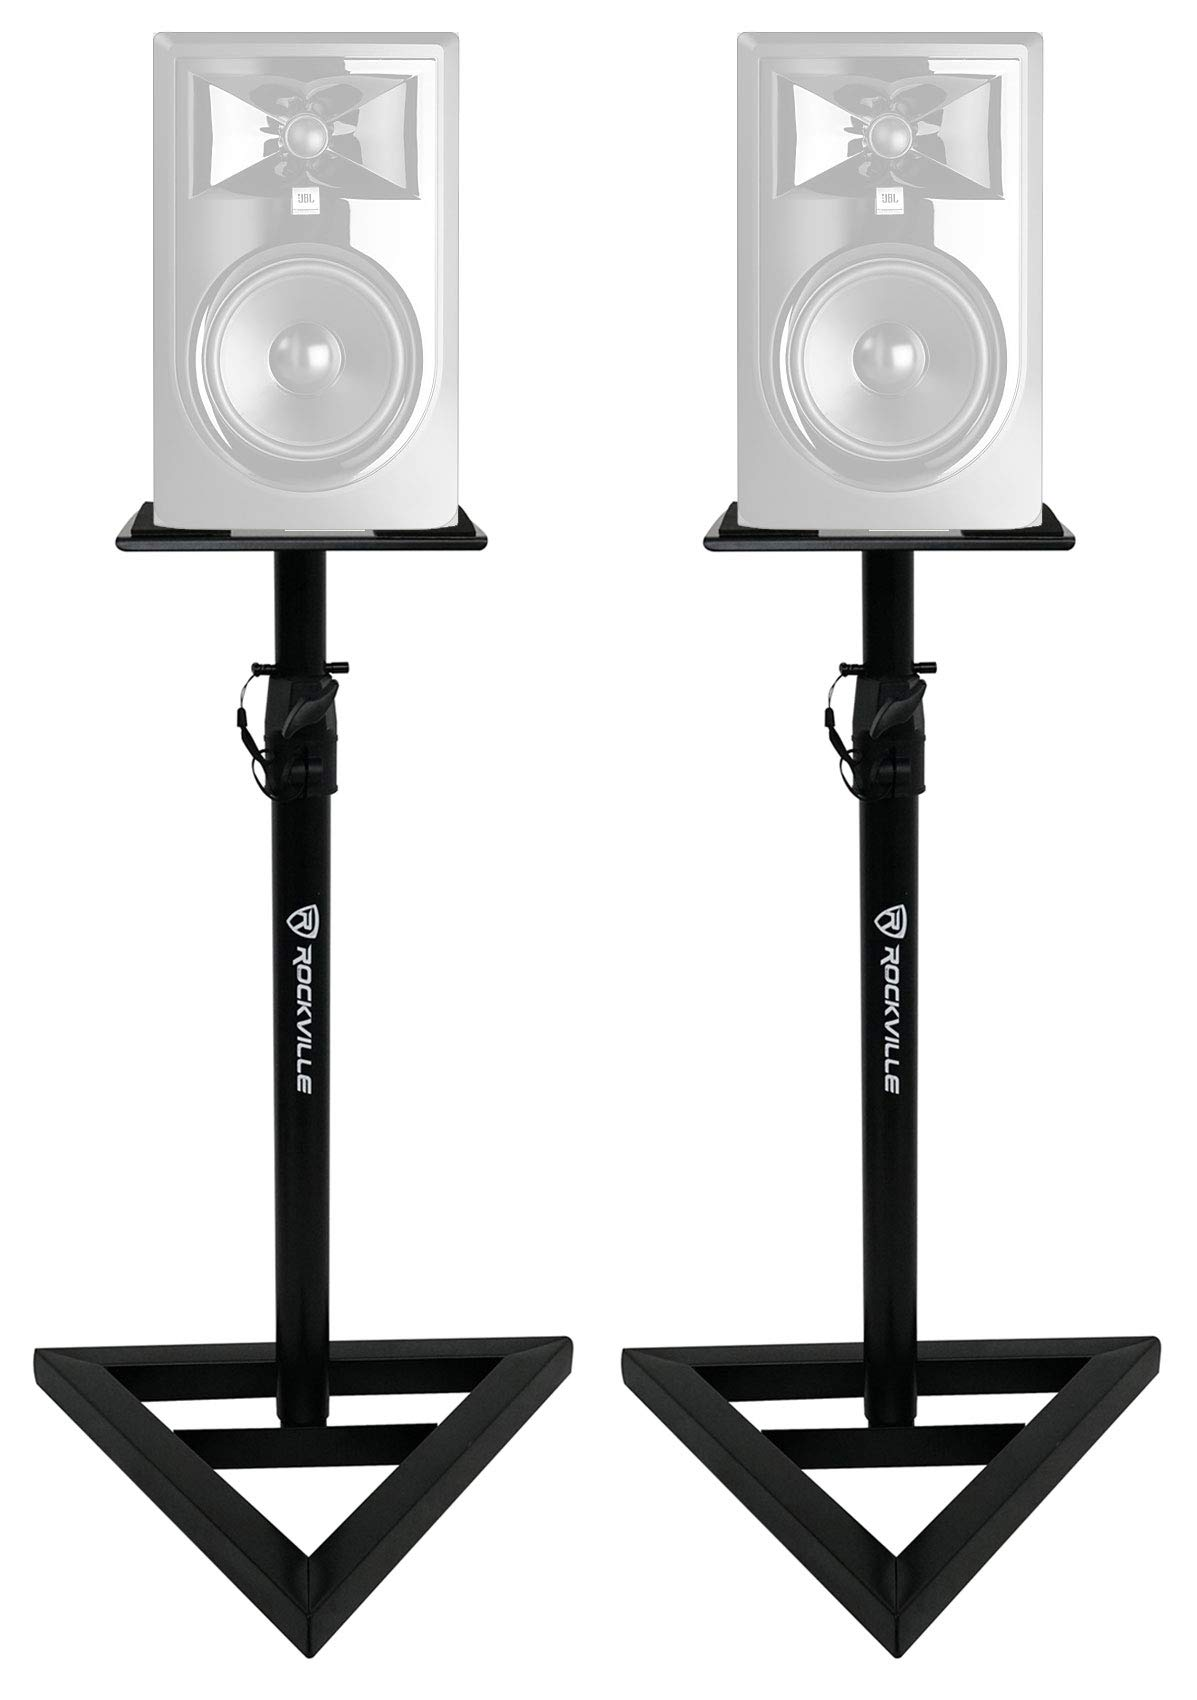 2) Rockville Adjustable Studio Monitor Speaker Stands For JBL 306P MKII Monitors